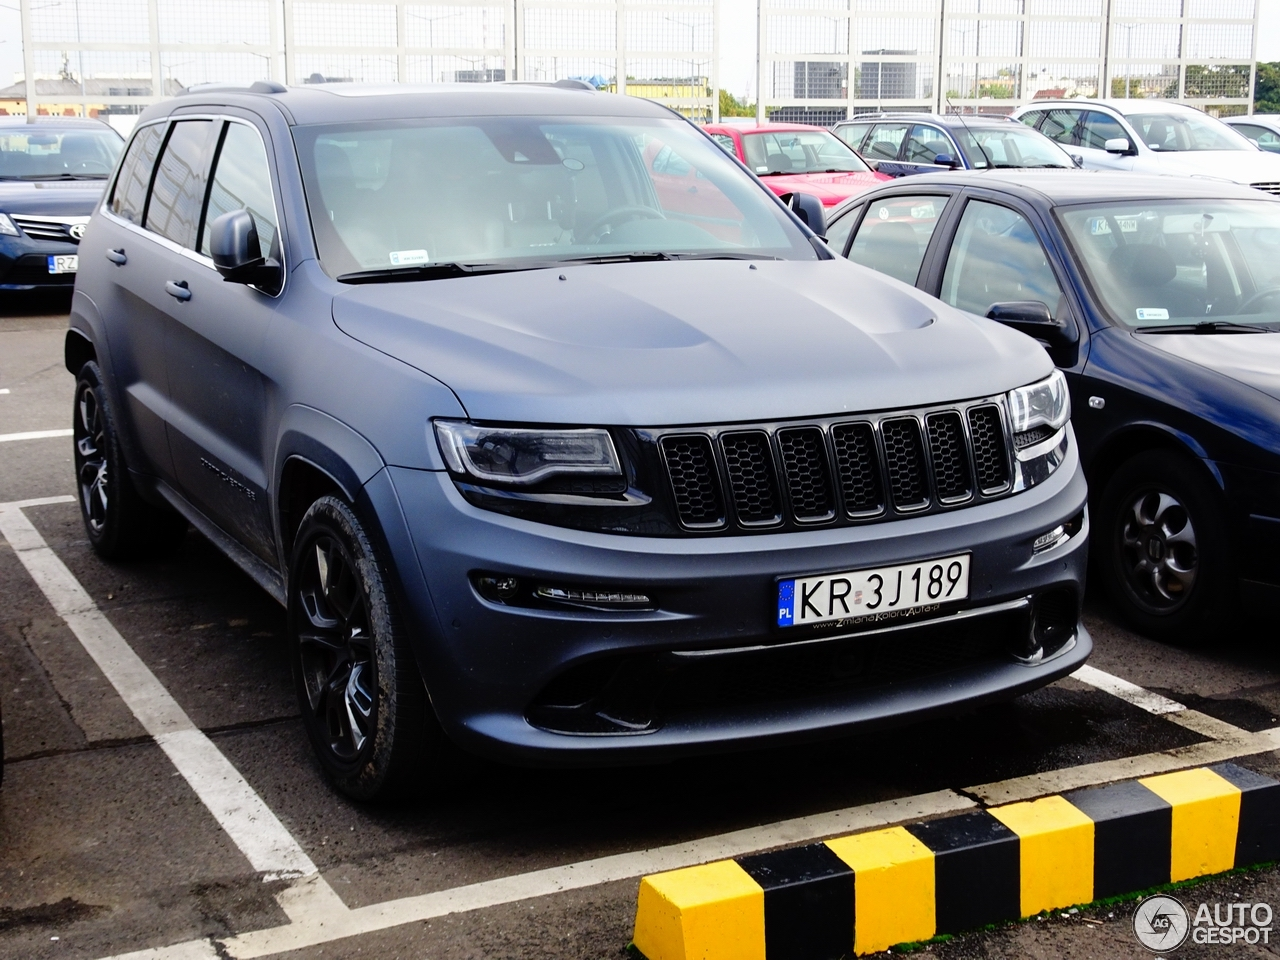 jeep grand cherokee srt 8 2013 11 oktober 2016 autogespot. Black Bedroom Furniture Sets. Home Design Ideas